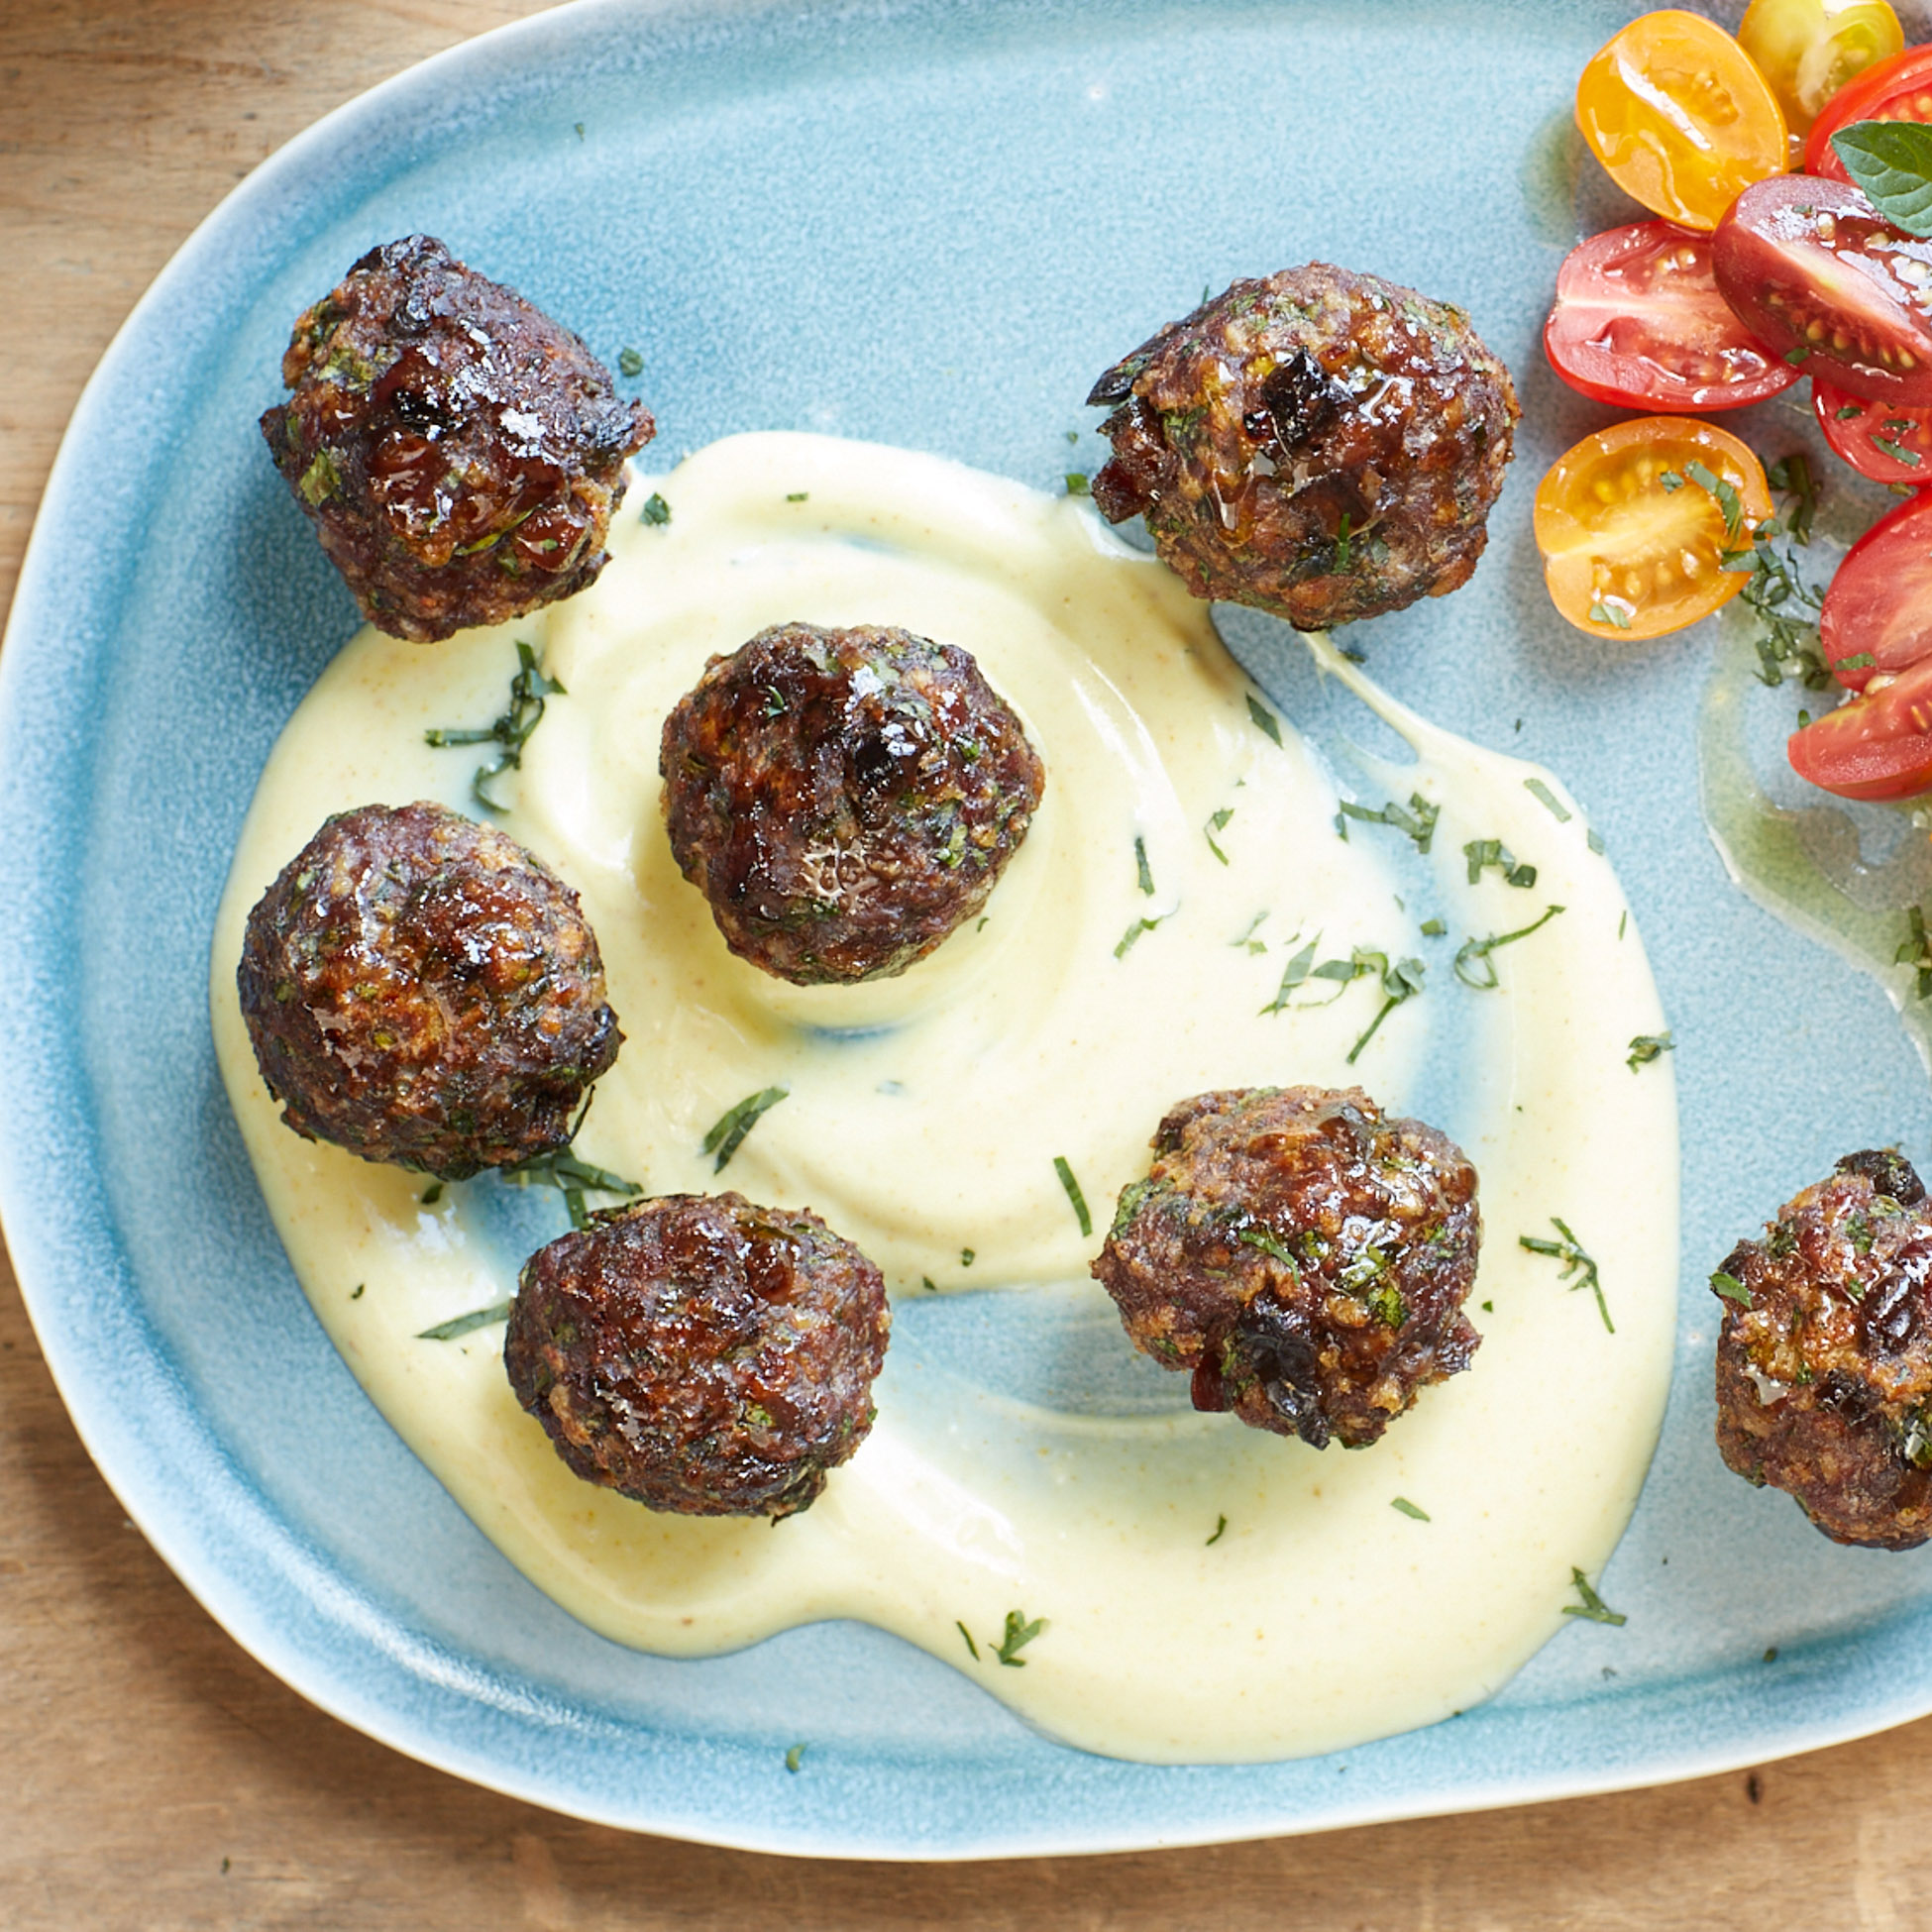 <p>The sweetness of prunes balances out the savory flavors of cumin and garlic in these bite-sized meatballs. Serve them in wraps and sandwiches.</p>